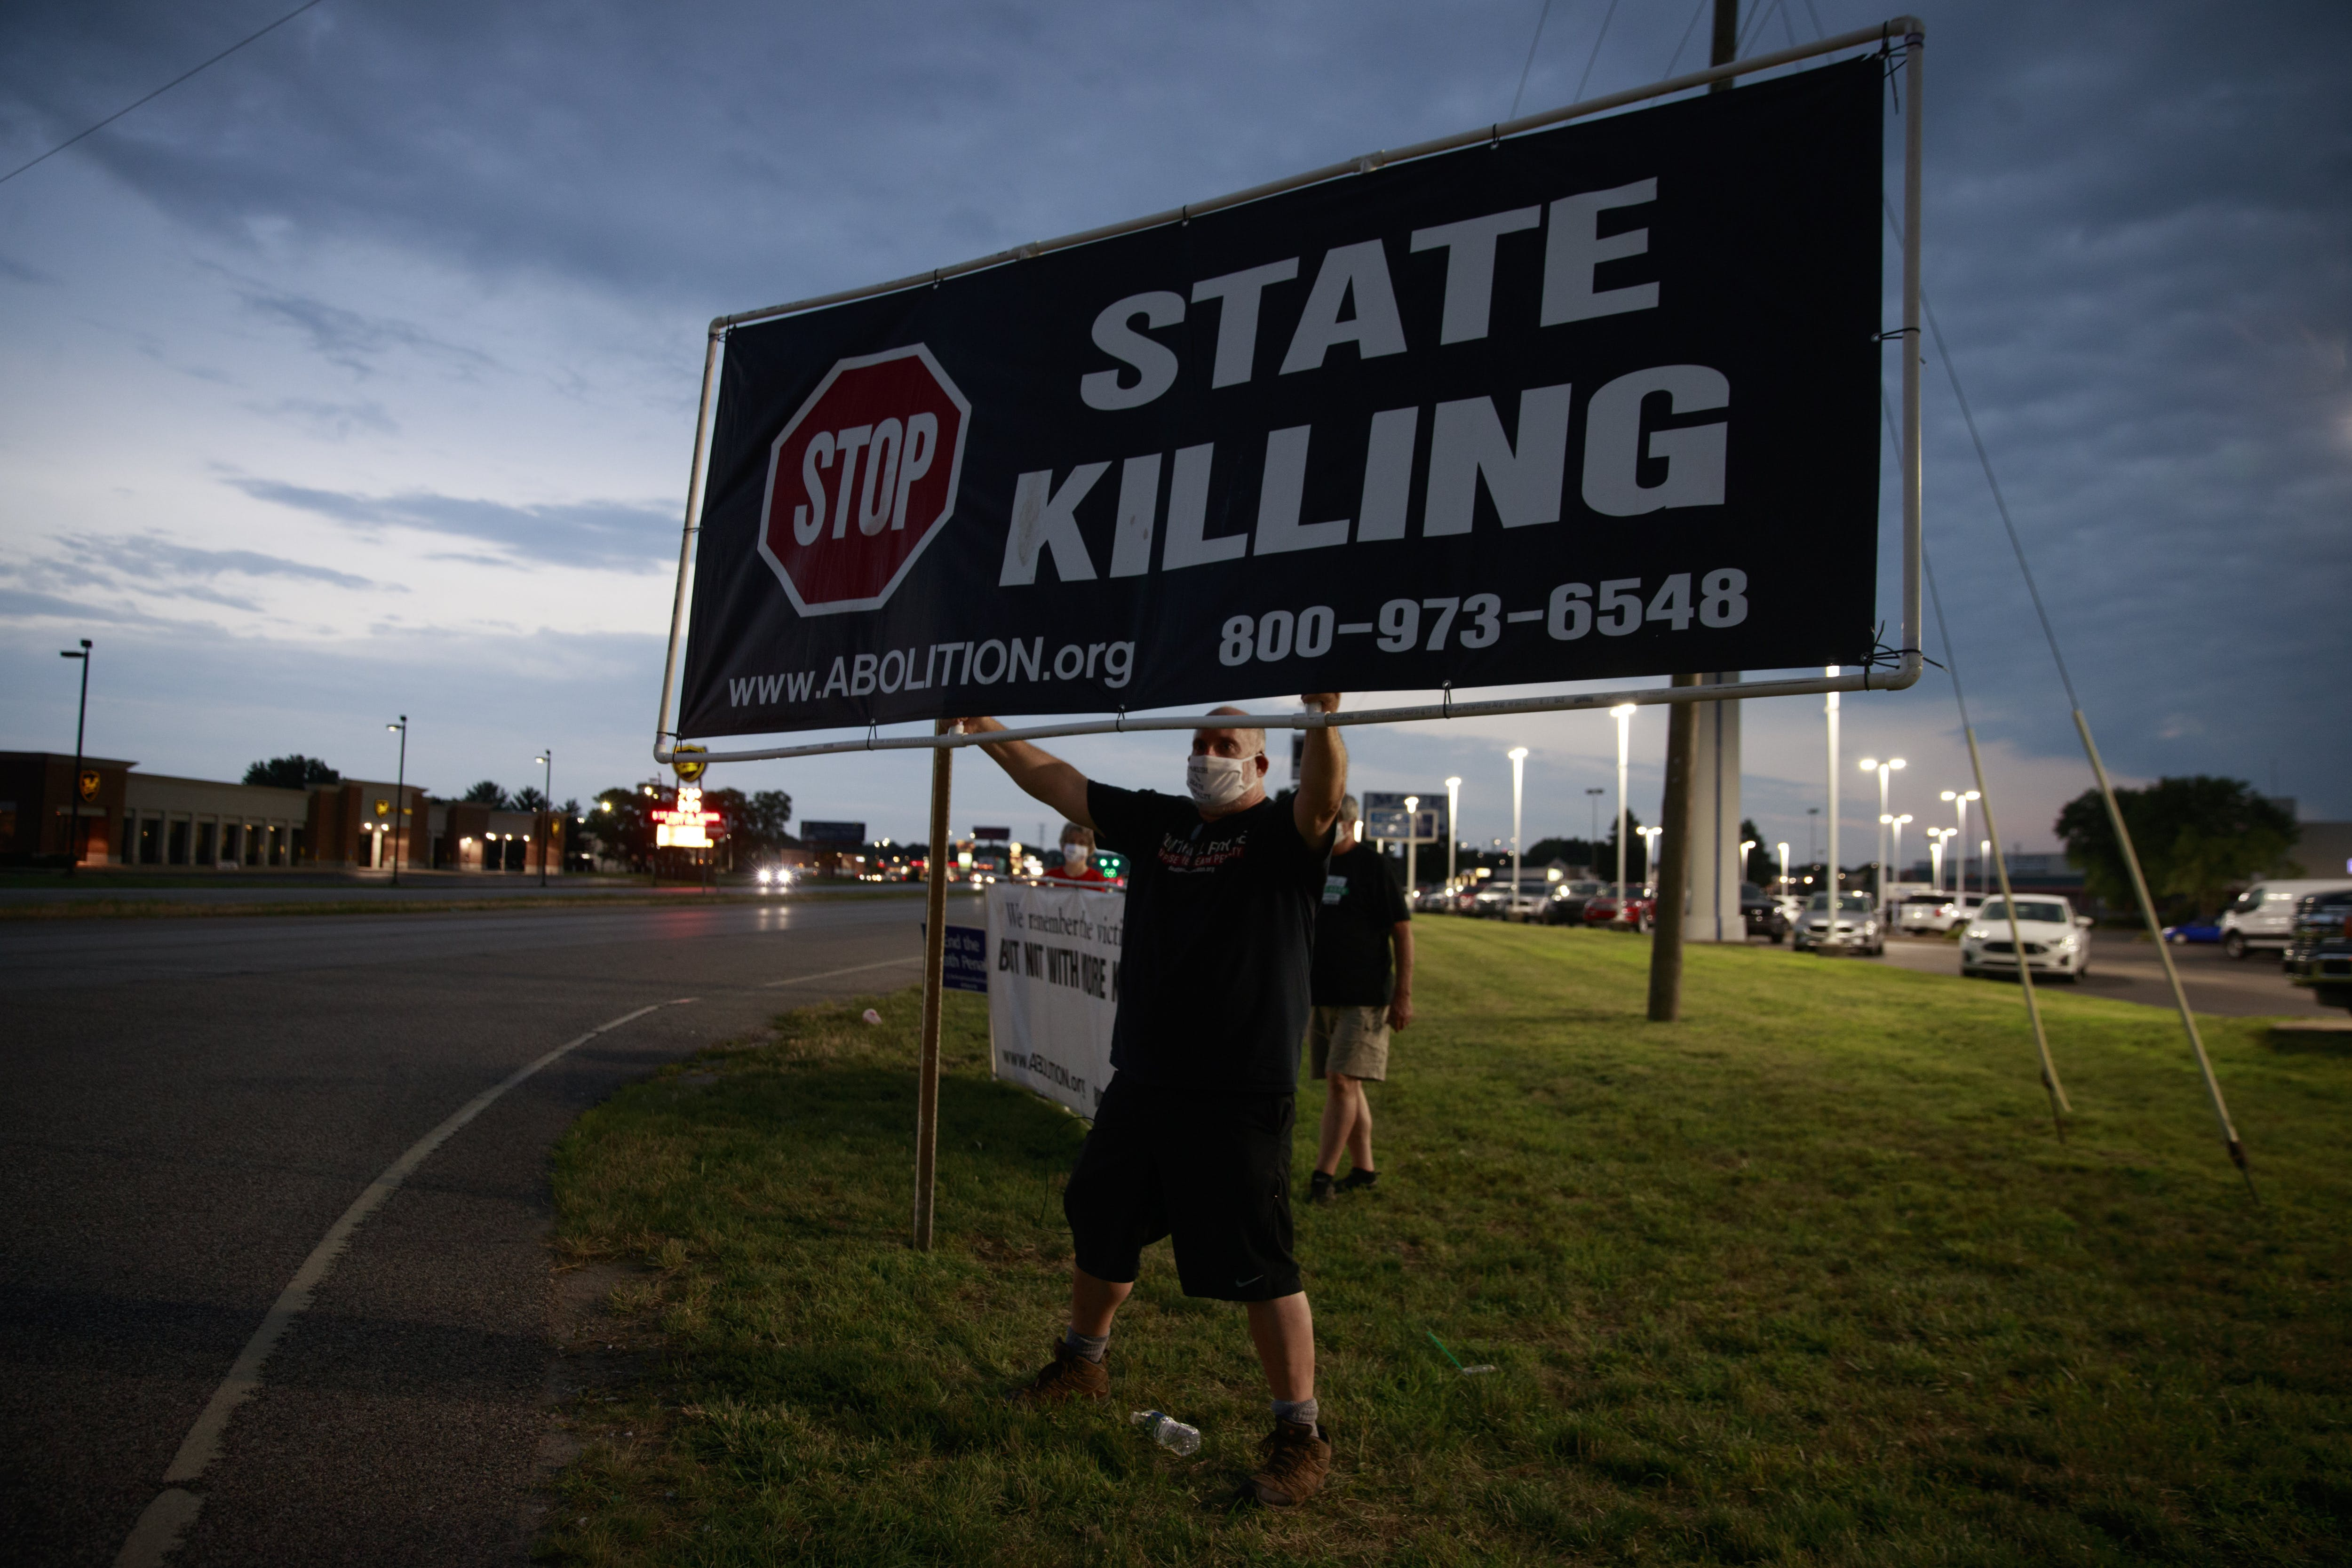 TERRE HAUTE, INDIANA, UNITED STATES - 2020/07/15: Abe Bonowitz of Death Penalty Action, an execution abolitionist group, protests near the Terre Haute Federal Correctional Complex where death row inmate Wesley Ira Purkey was scheduled to be executed by lethal injection.Purkey's execution scheduled for 7 p.m., was delayed by a judge. Purkey suffers from Dementia, and Alzheimer's disease. Wesley Ira Purkey was convicted of a gruesome 1998 kidnapping and killing. (Photo by Jeremy Hogan/SOPA Images/LightRocket via Getty Images)